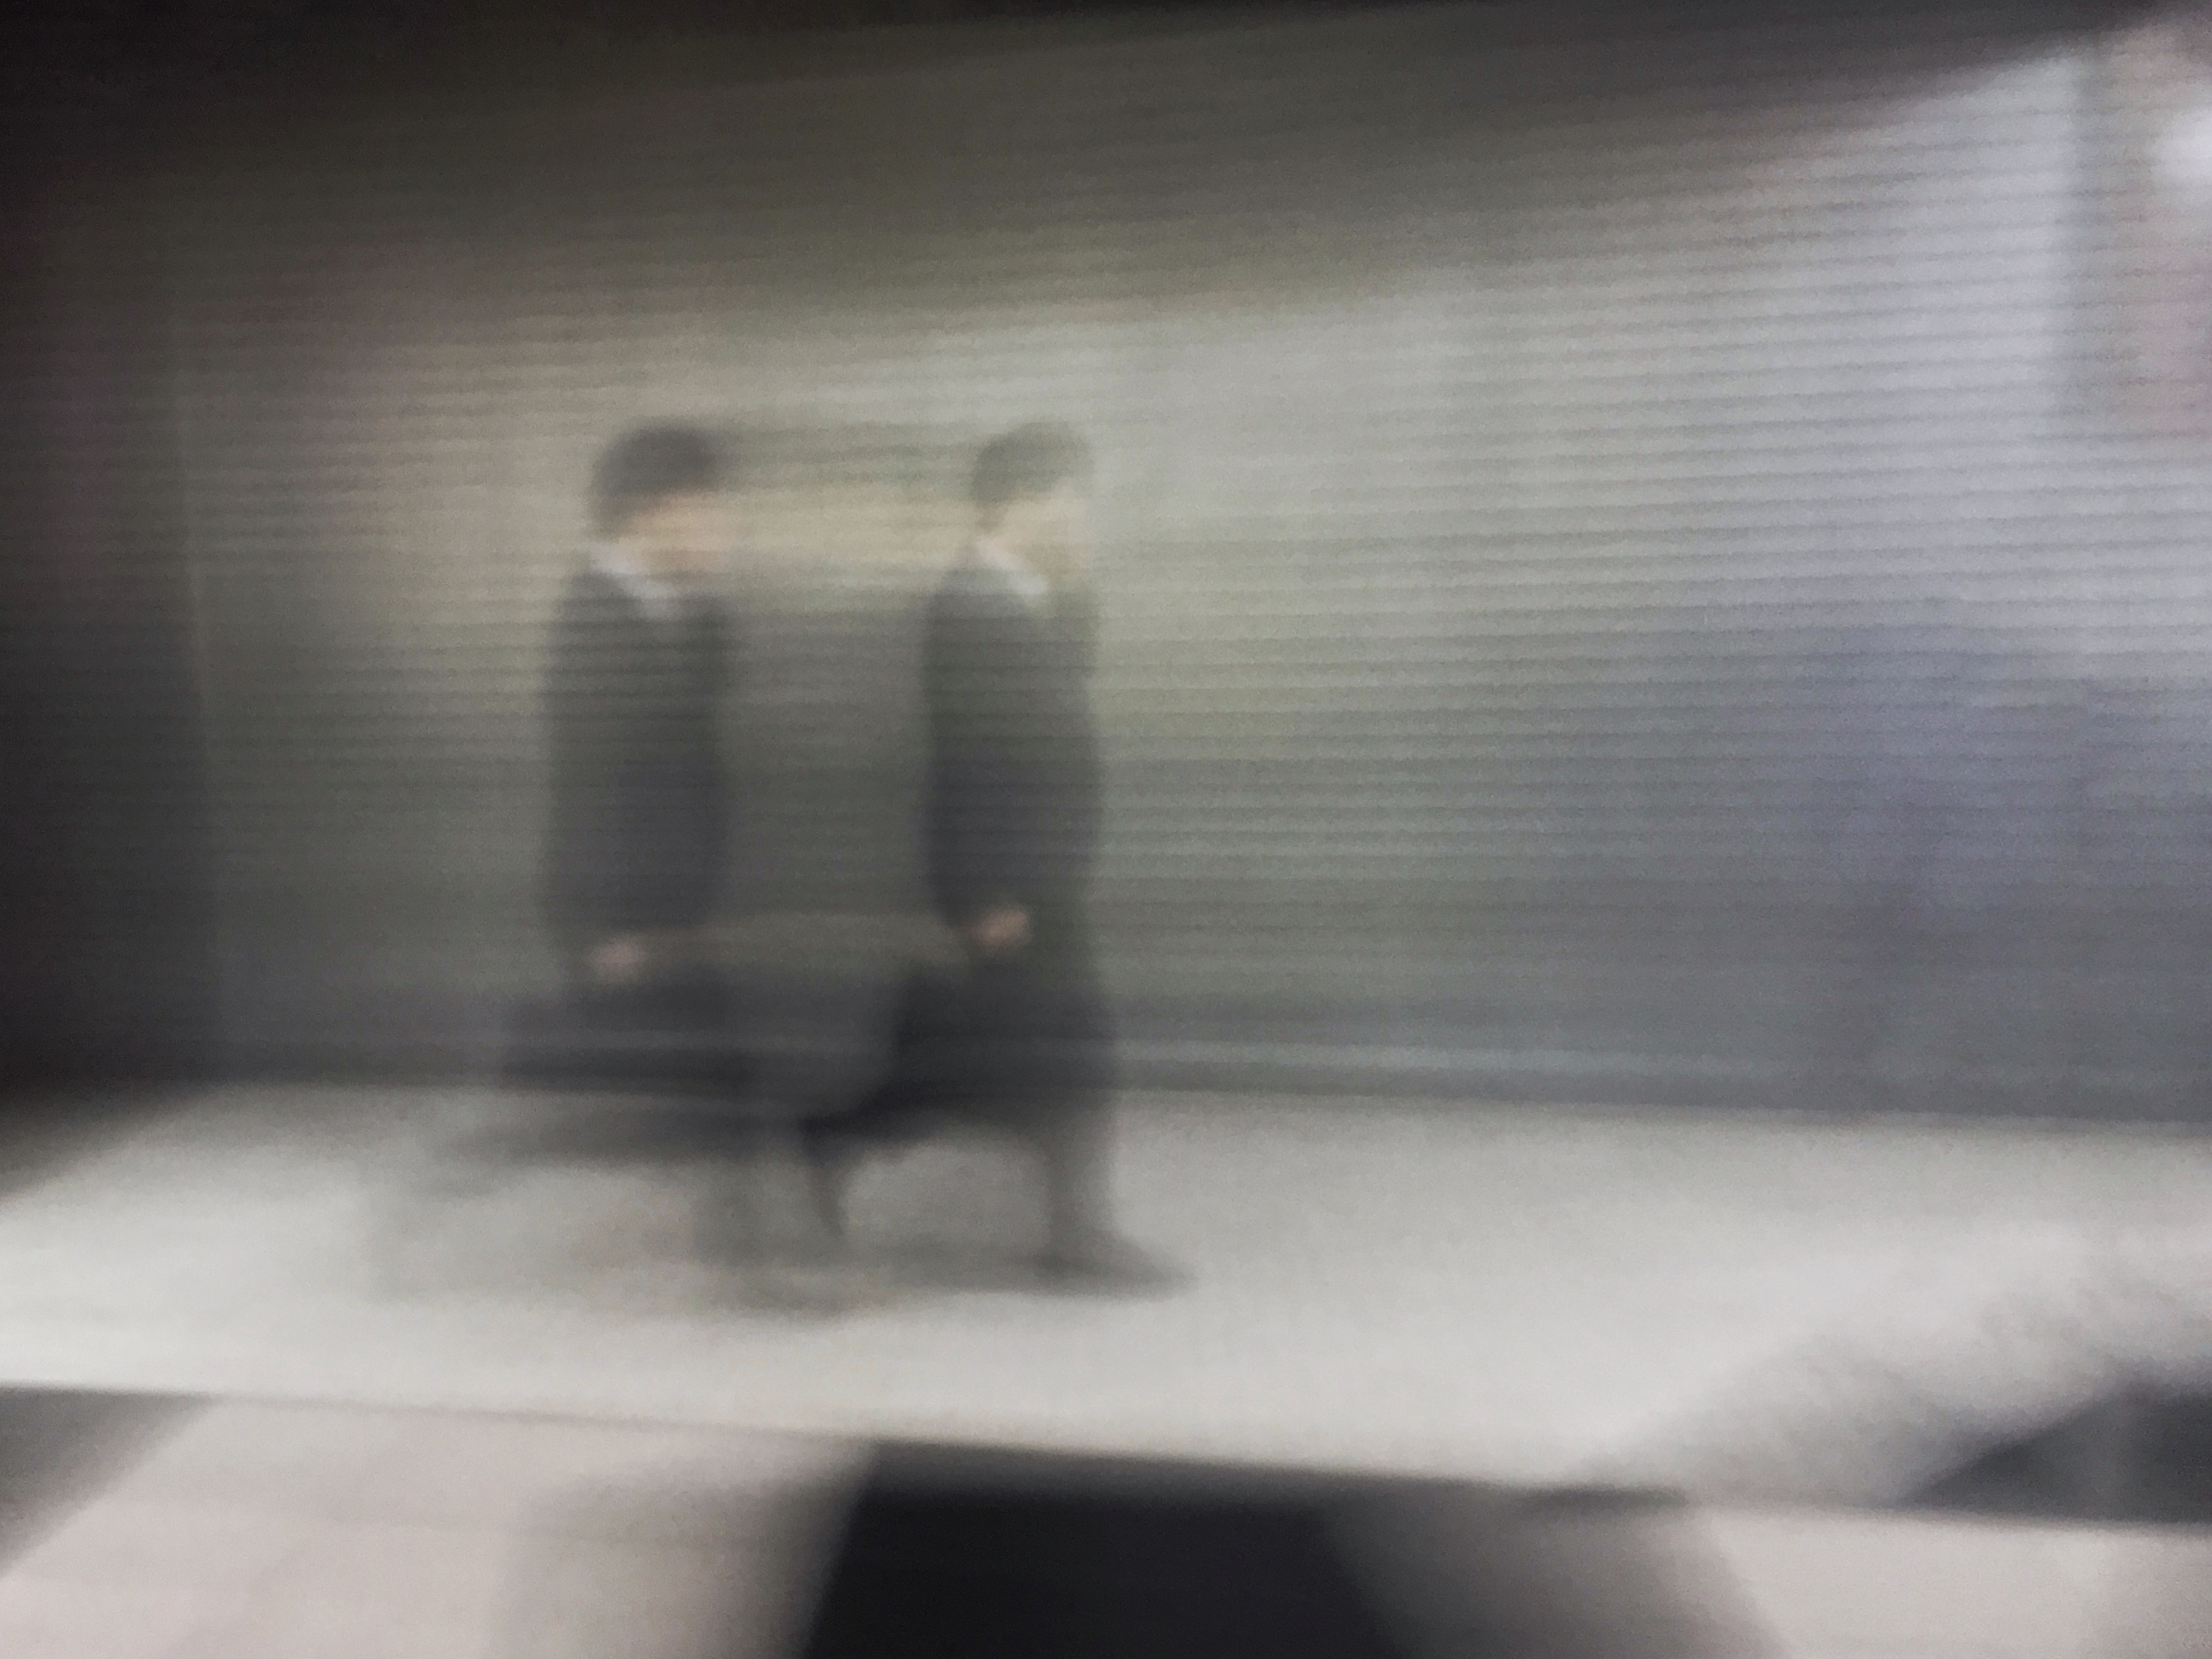 Intentional camera movement with the iPhone 6s (Tokyo, April 2016)